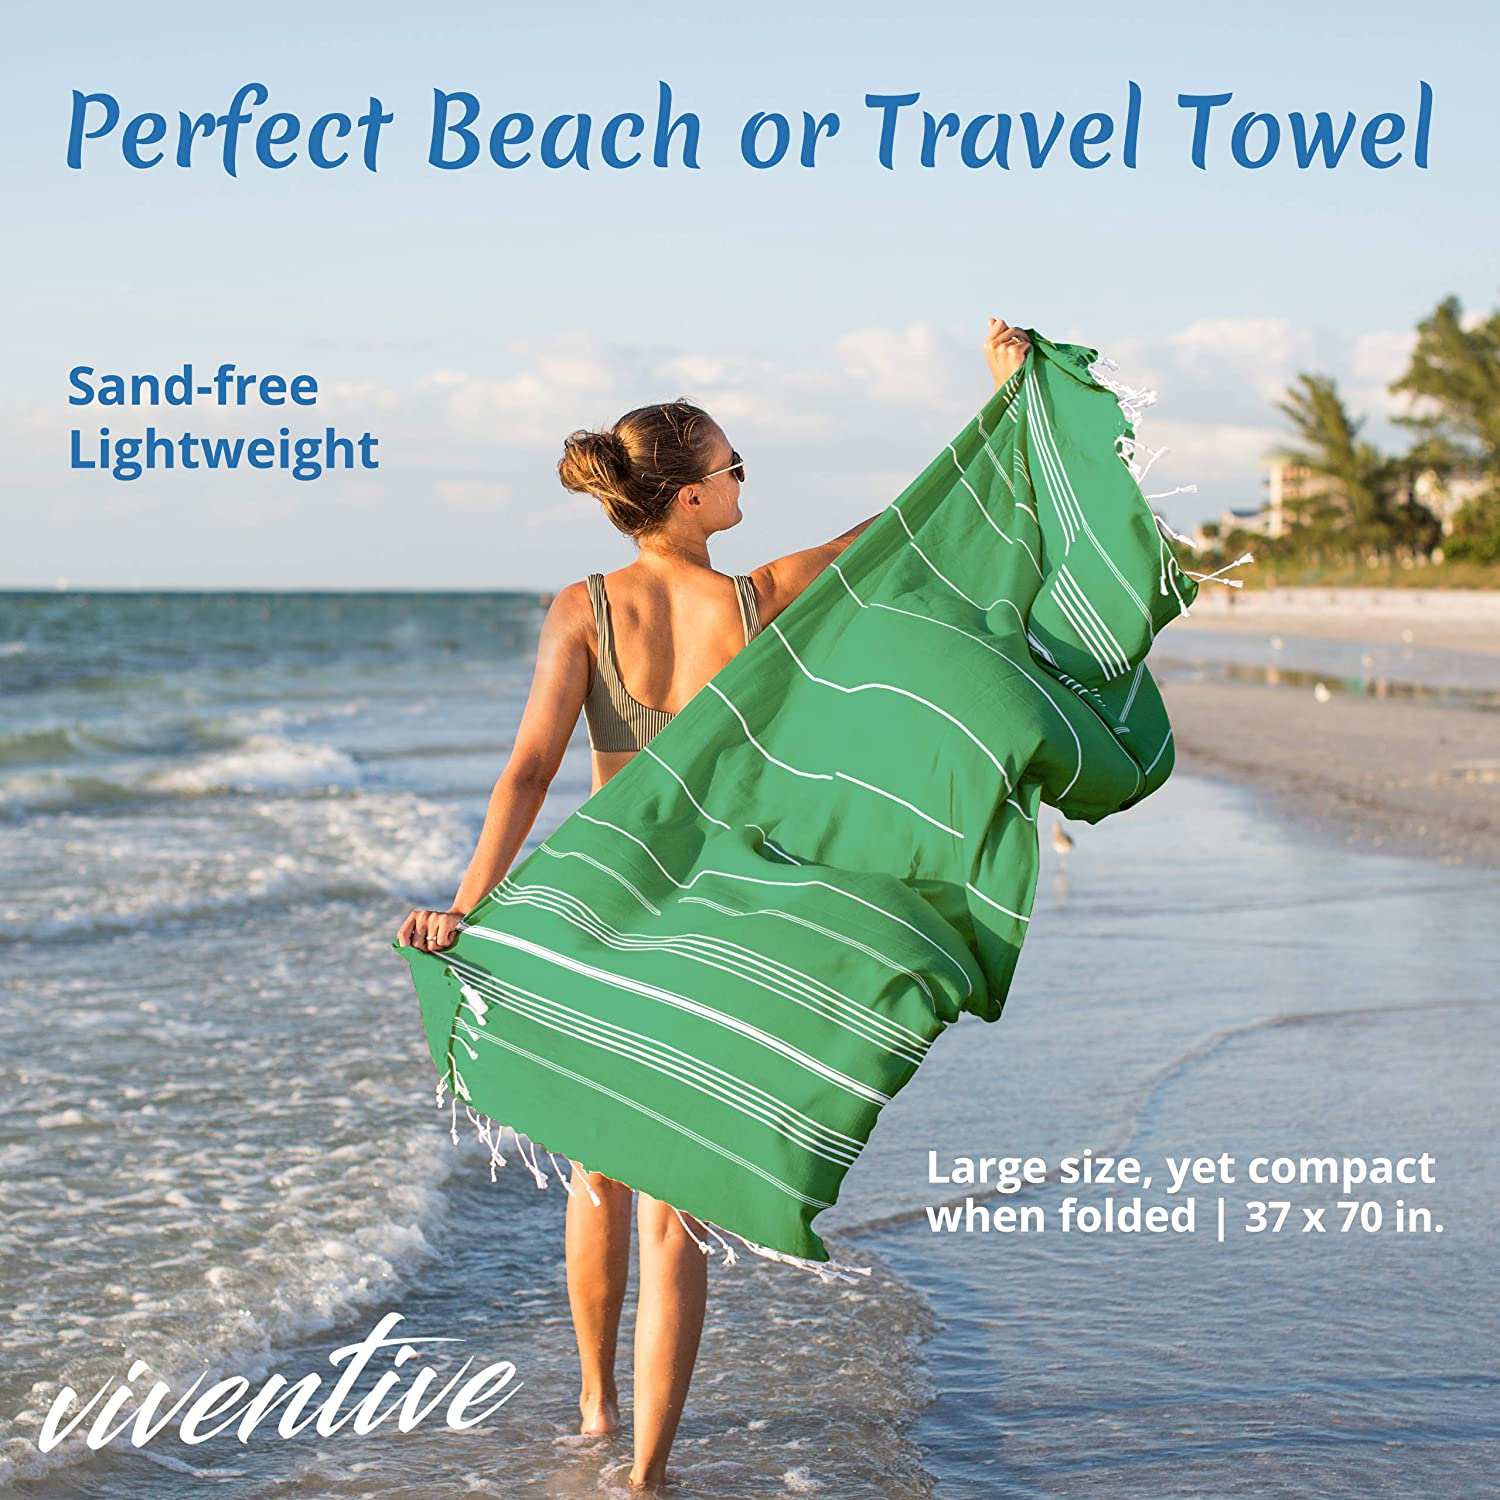 Yoga Travel and Throw Blanket Green Viventive Turkish Beach Towel 37 by 70 Inches Made of 100/% Cotton Sauna Ultra Soft and Absorbent Bath Quick Drying Peshtemal Hammam Towel for Beach